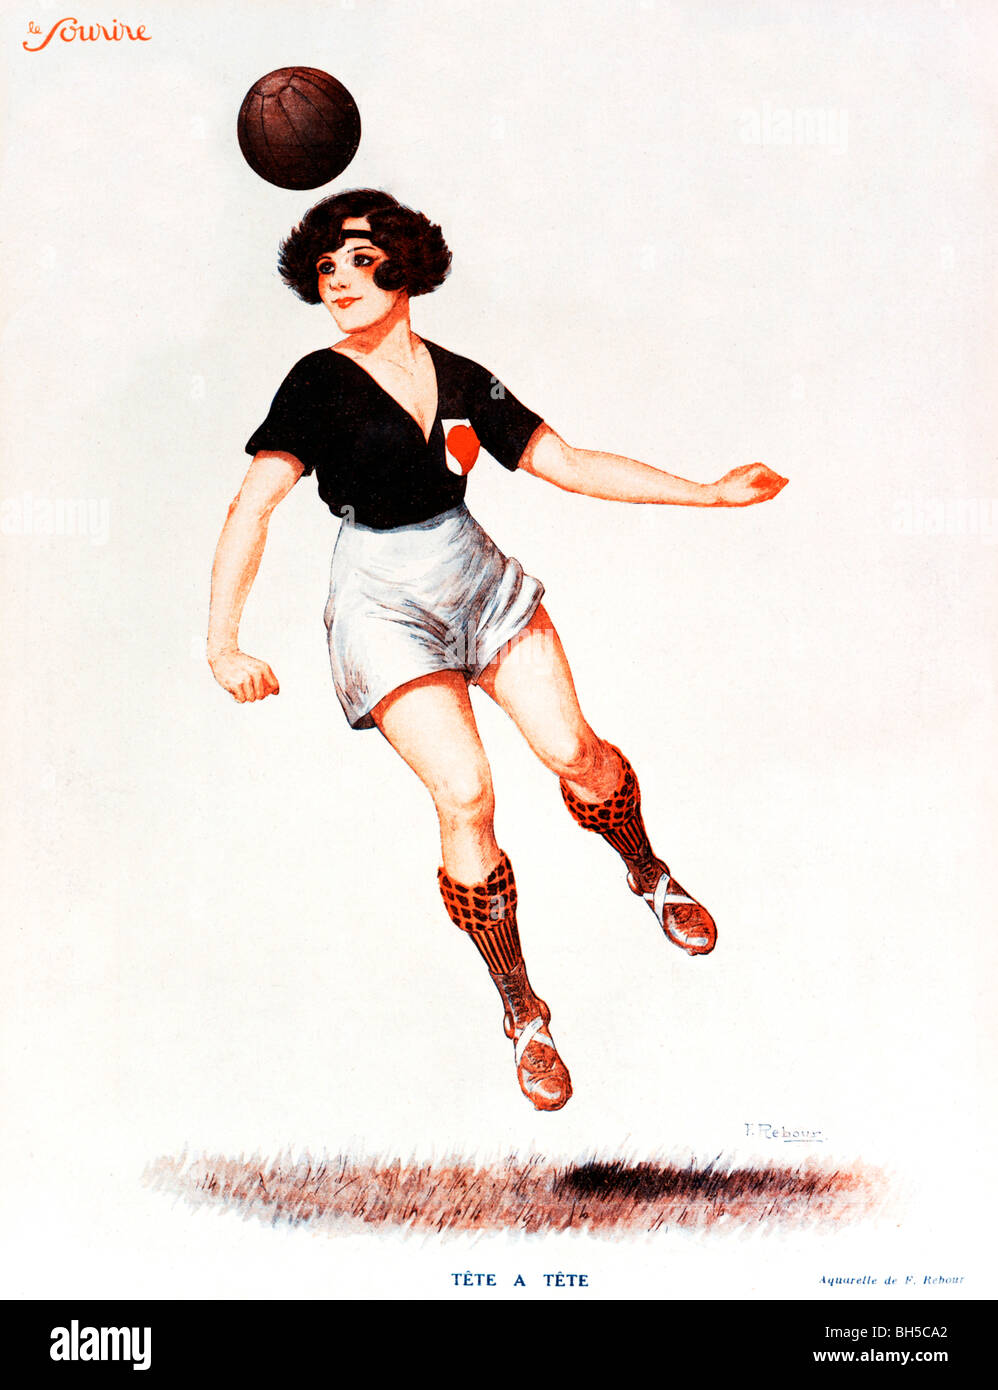 Tete A Tete, 1920s French magazine illustration of a lady footballer using her head to good effect - Stock Image